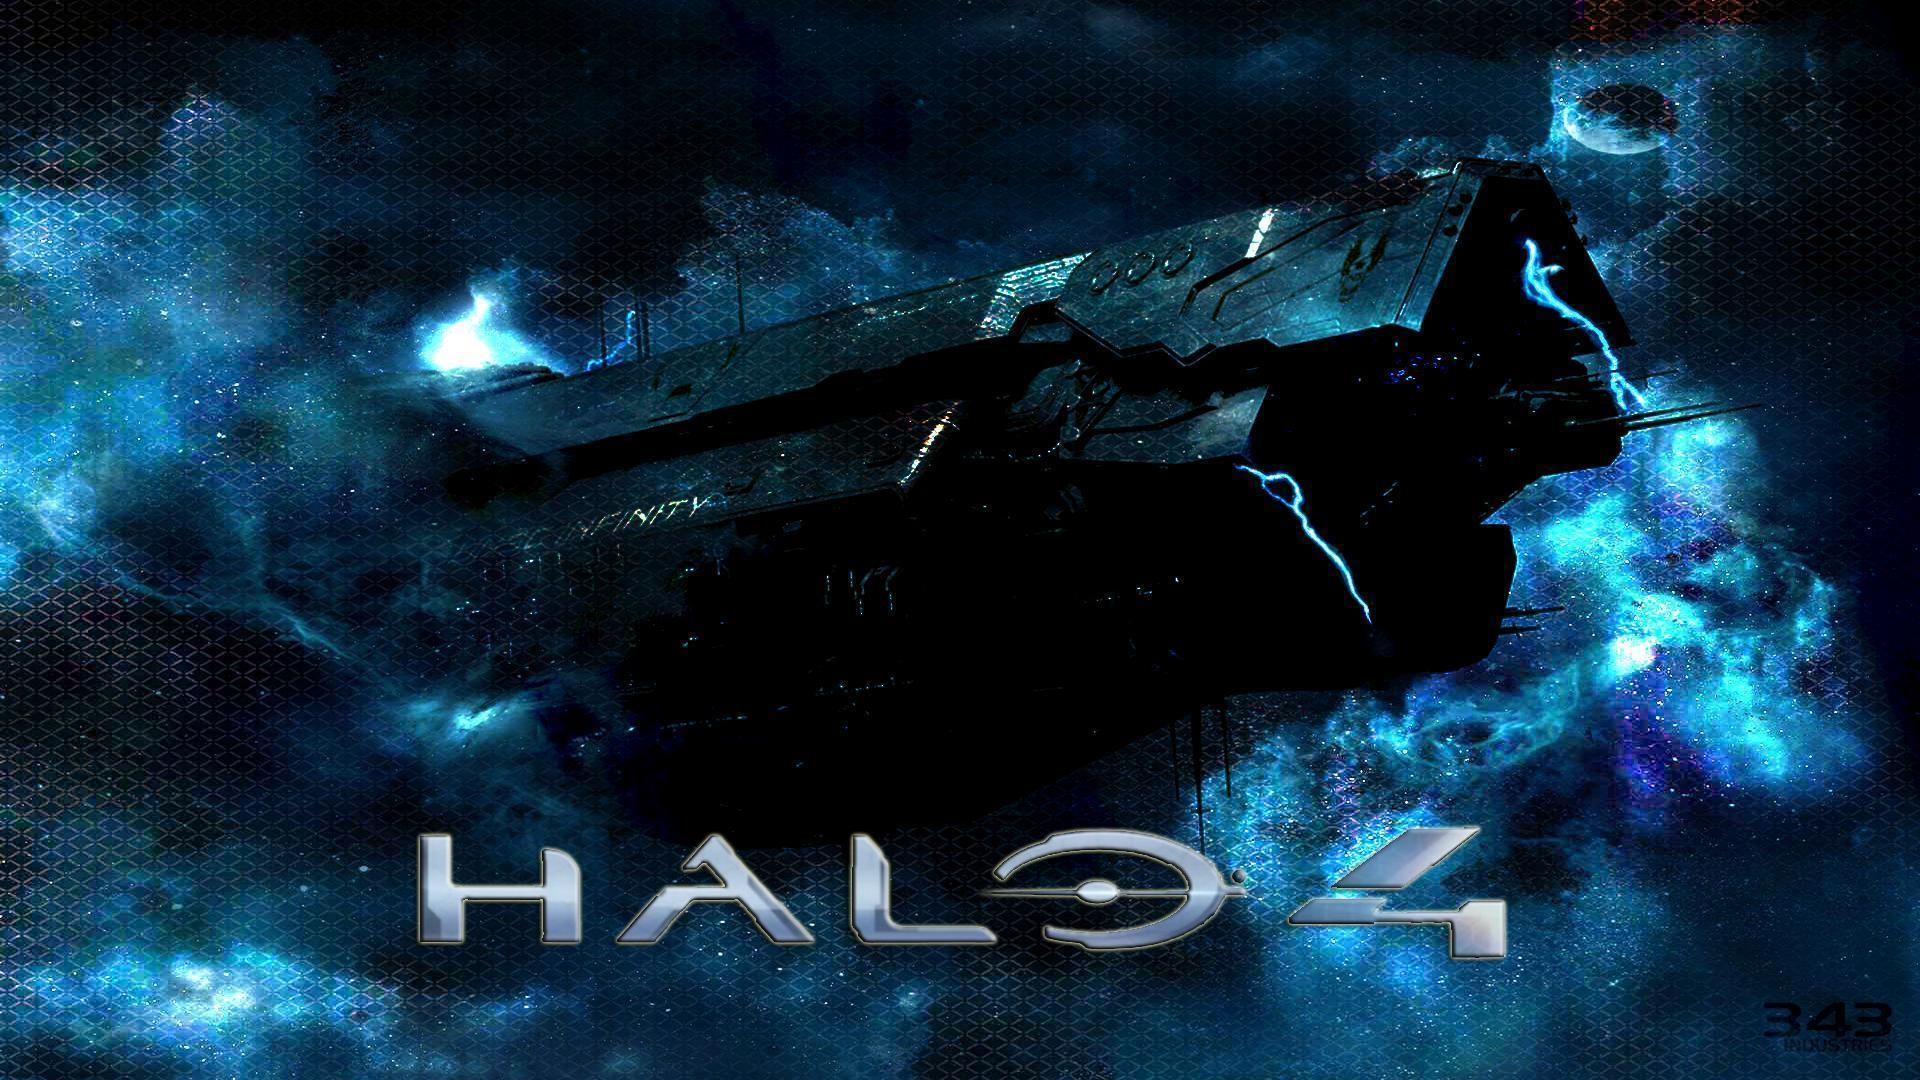 Halo 4 wallpapers 1920x1080 wallpaper cave - Halo 4 pictures ...